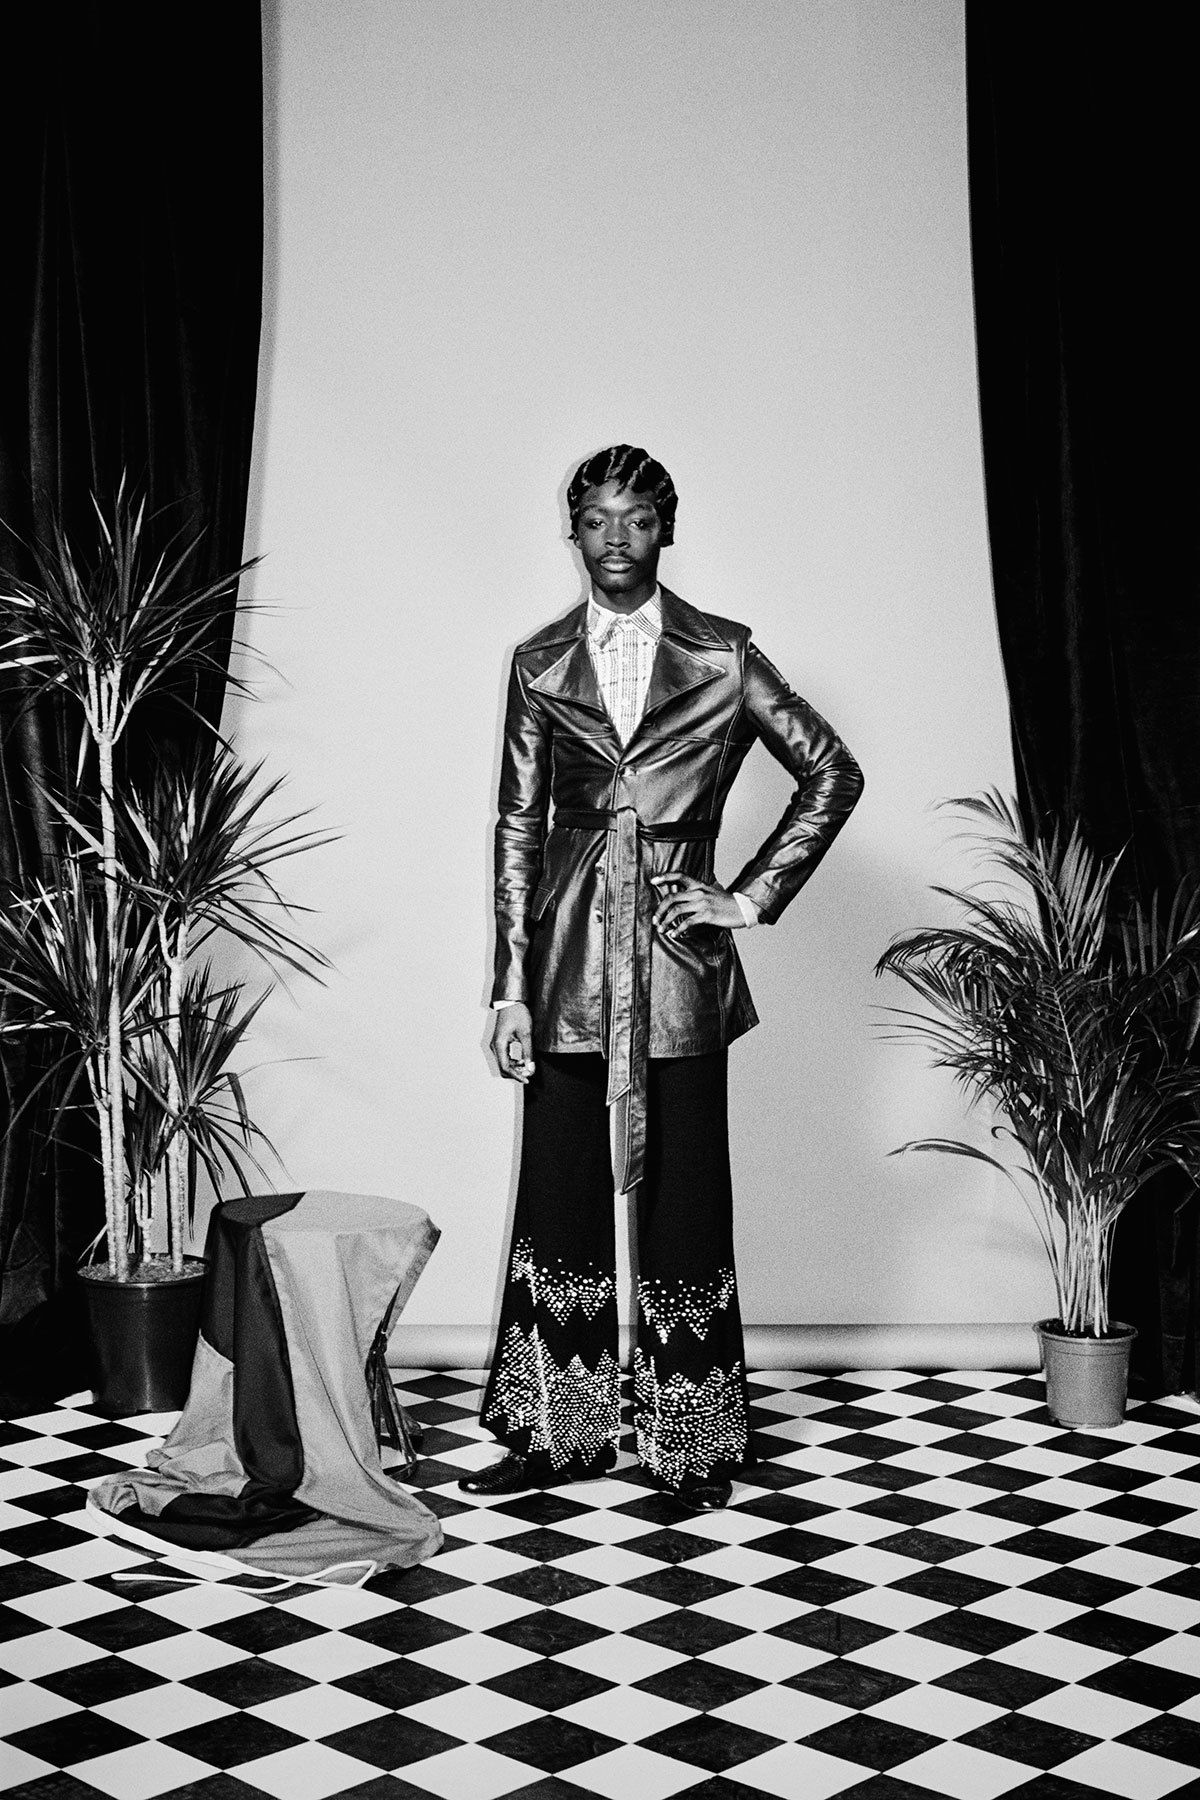 Buffalo Collective co-founder Jamie Morgan brings Wales Bonner's SS16 collection to life on her muse King Owusu.